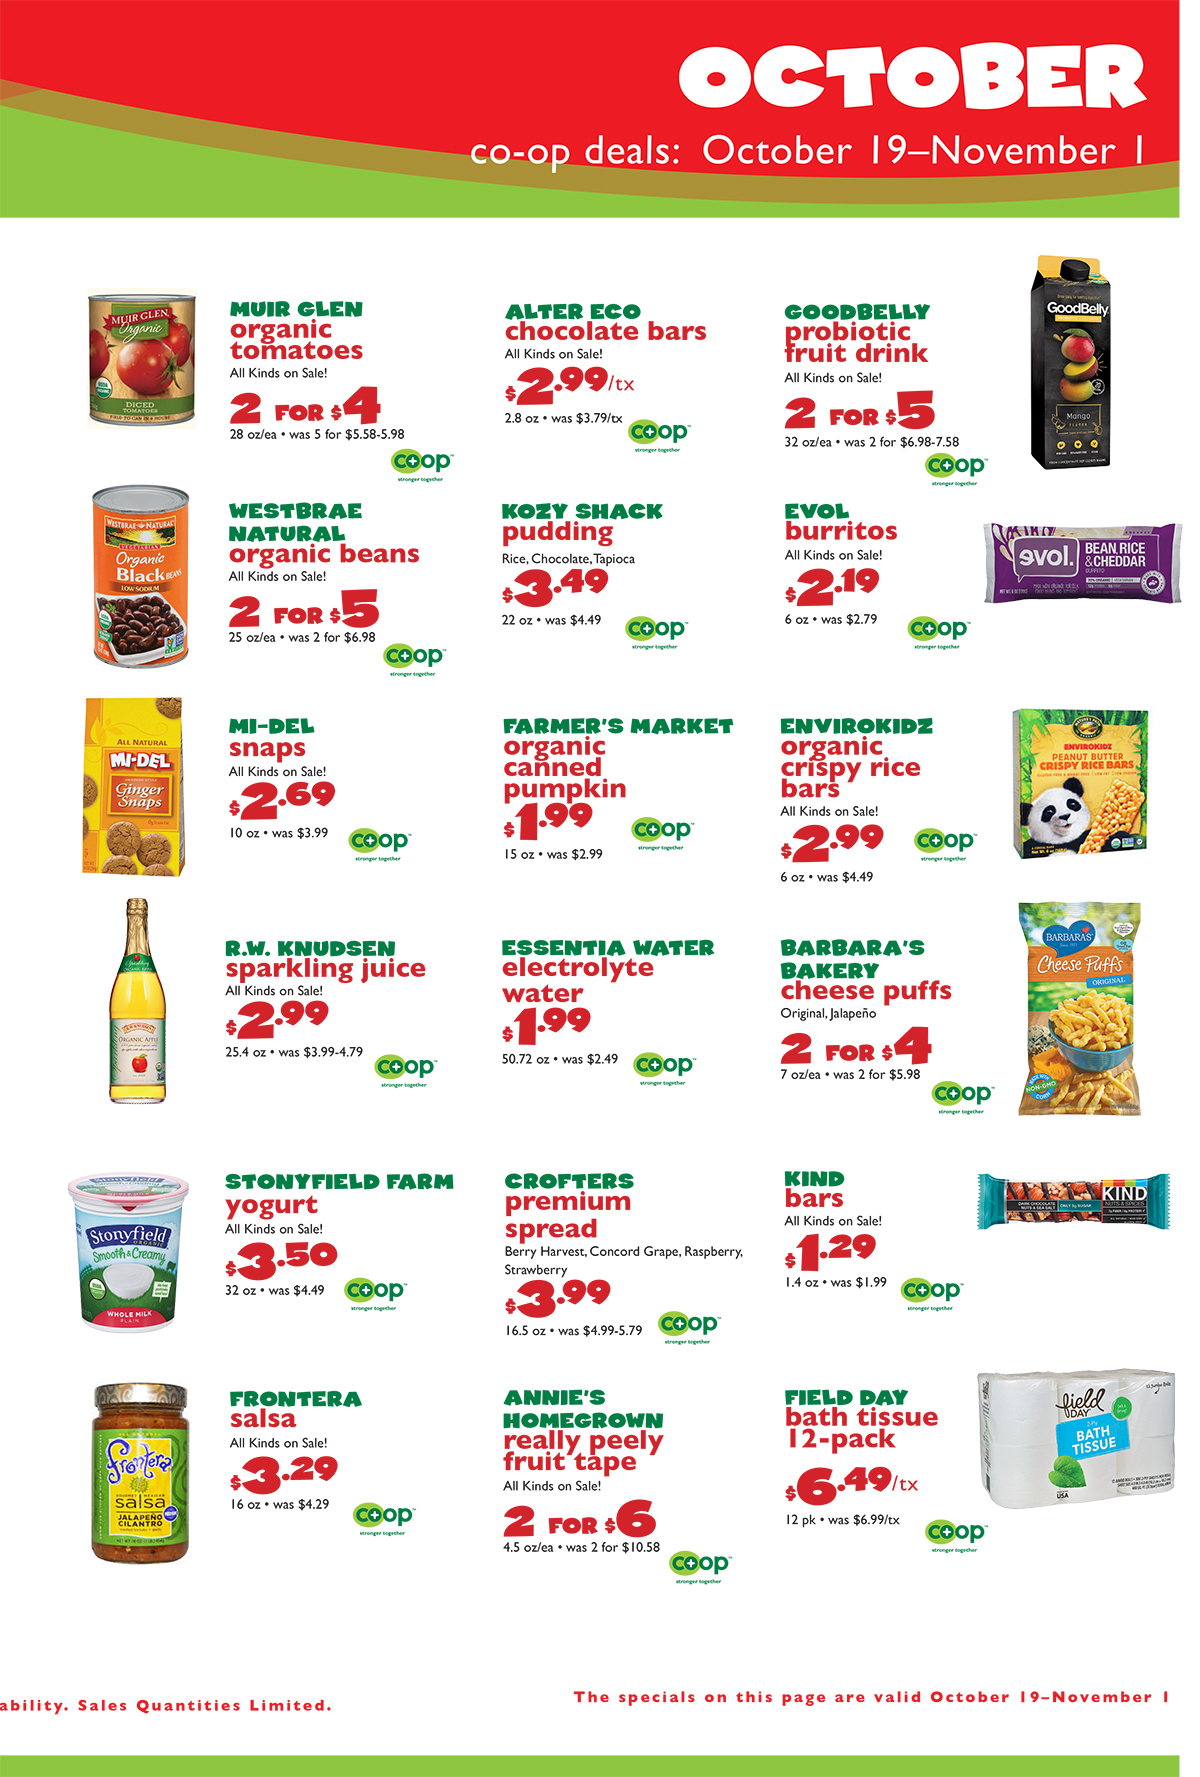 October Co-opDeals, page 3